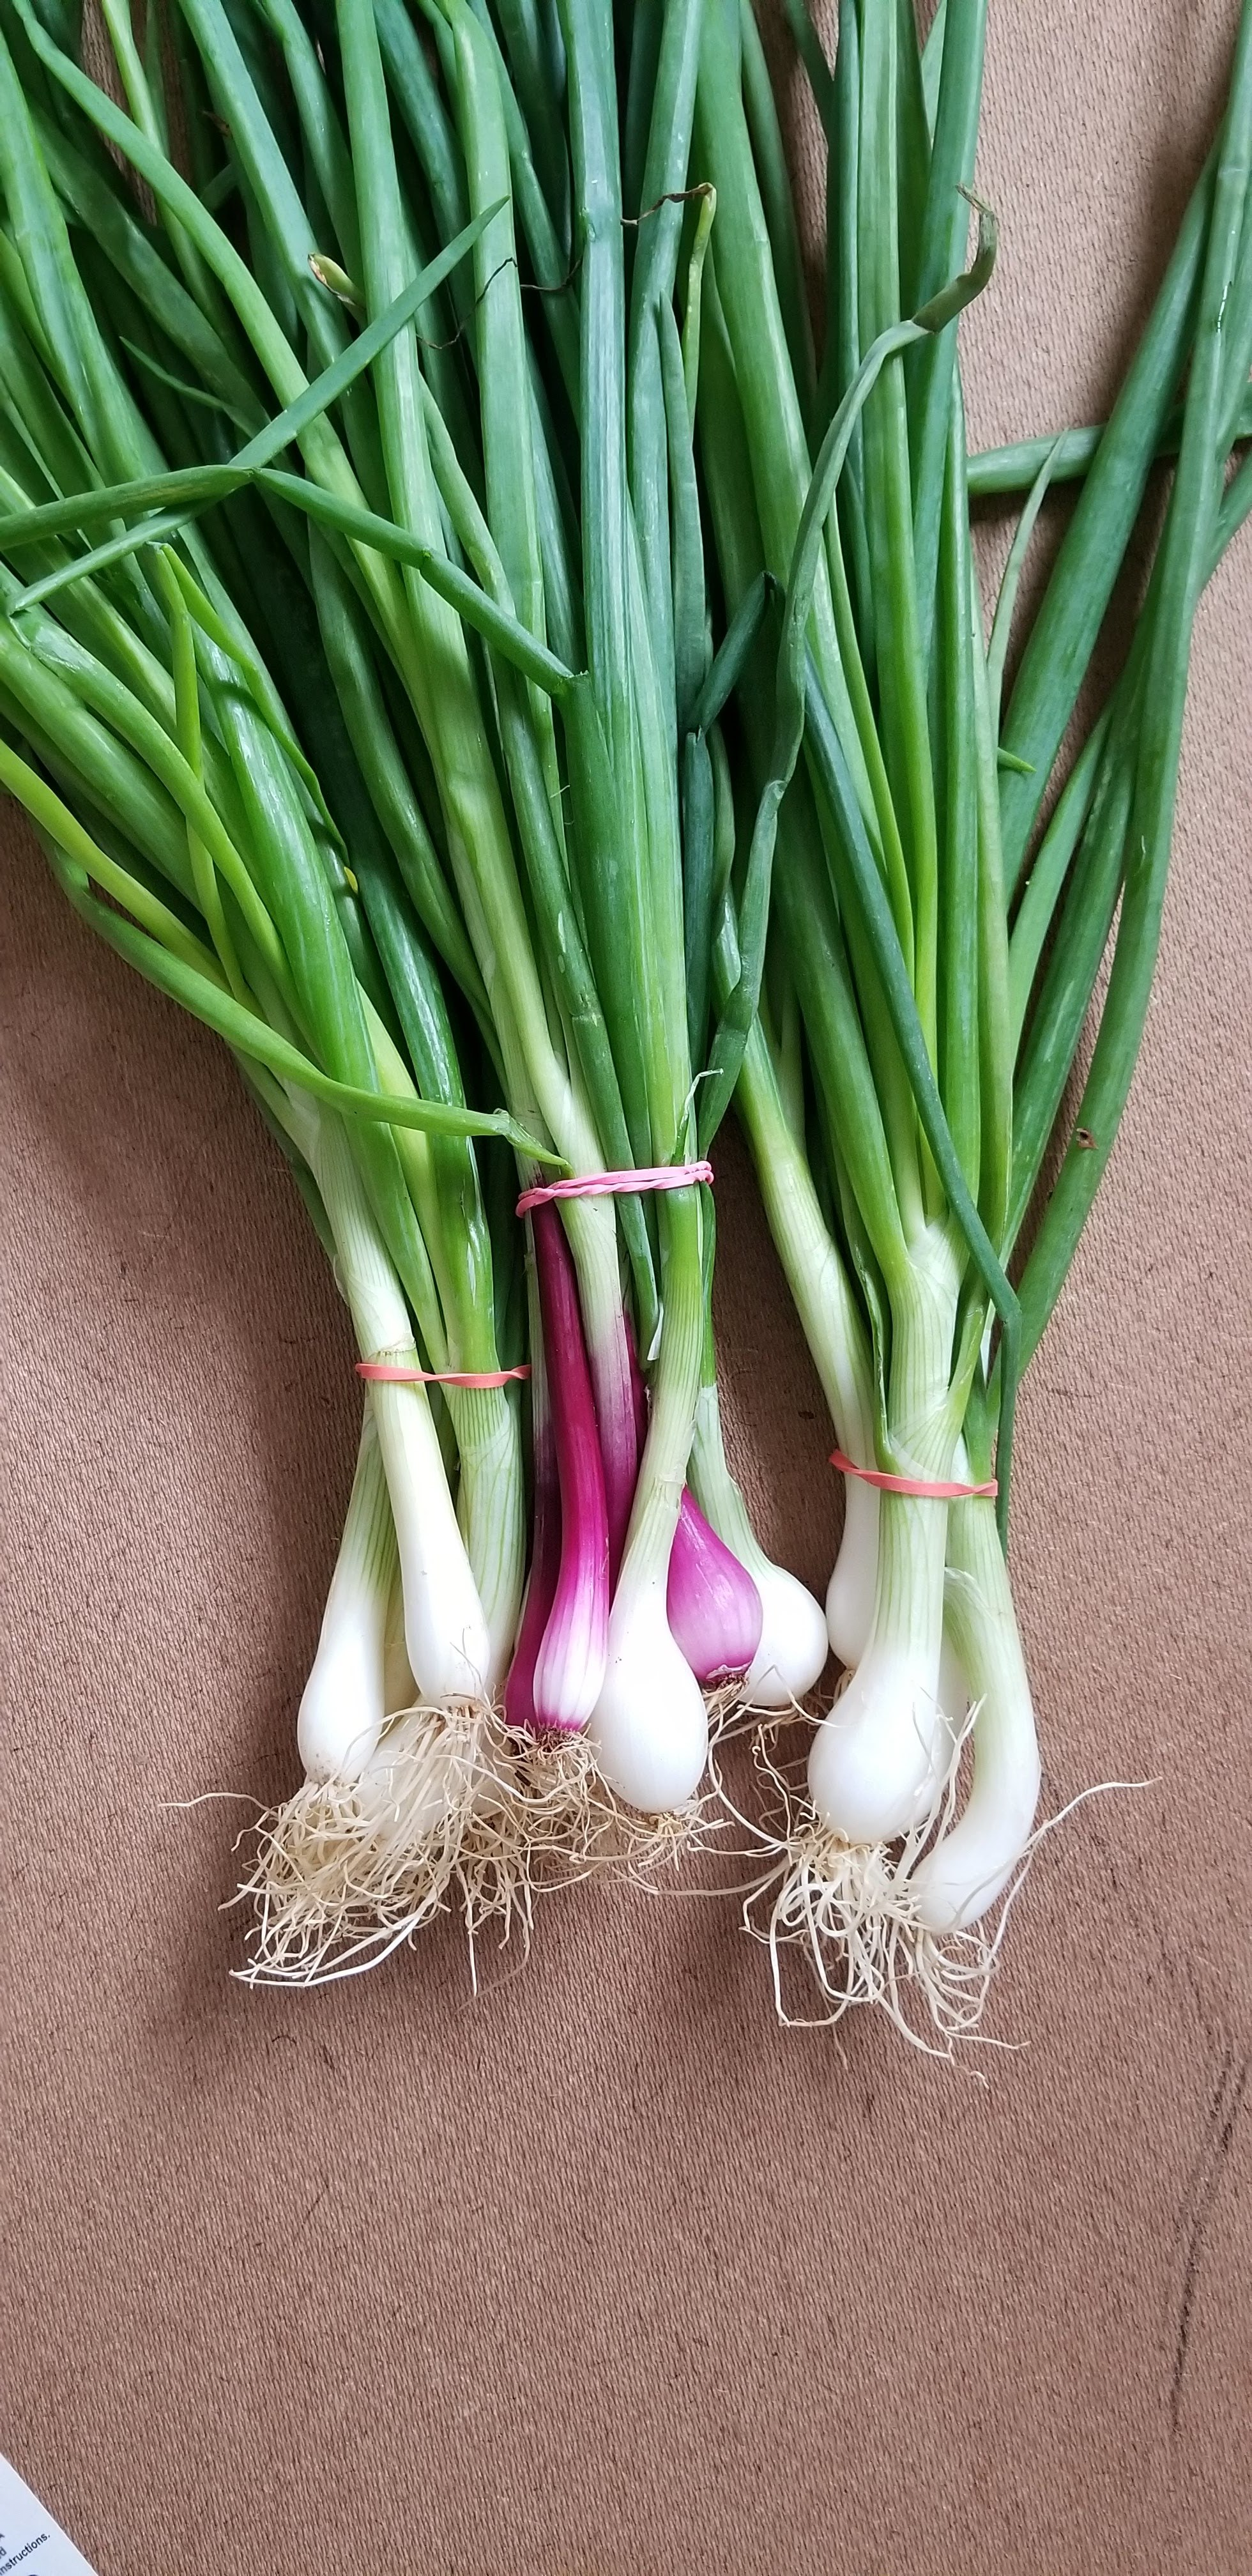 We picked these green onions up fresh from the farmers market.